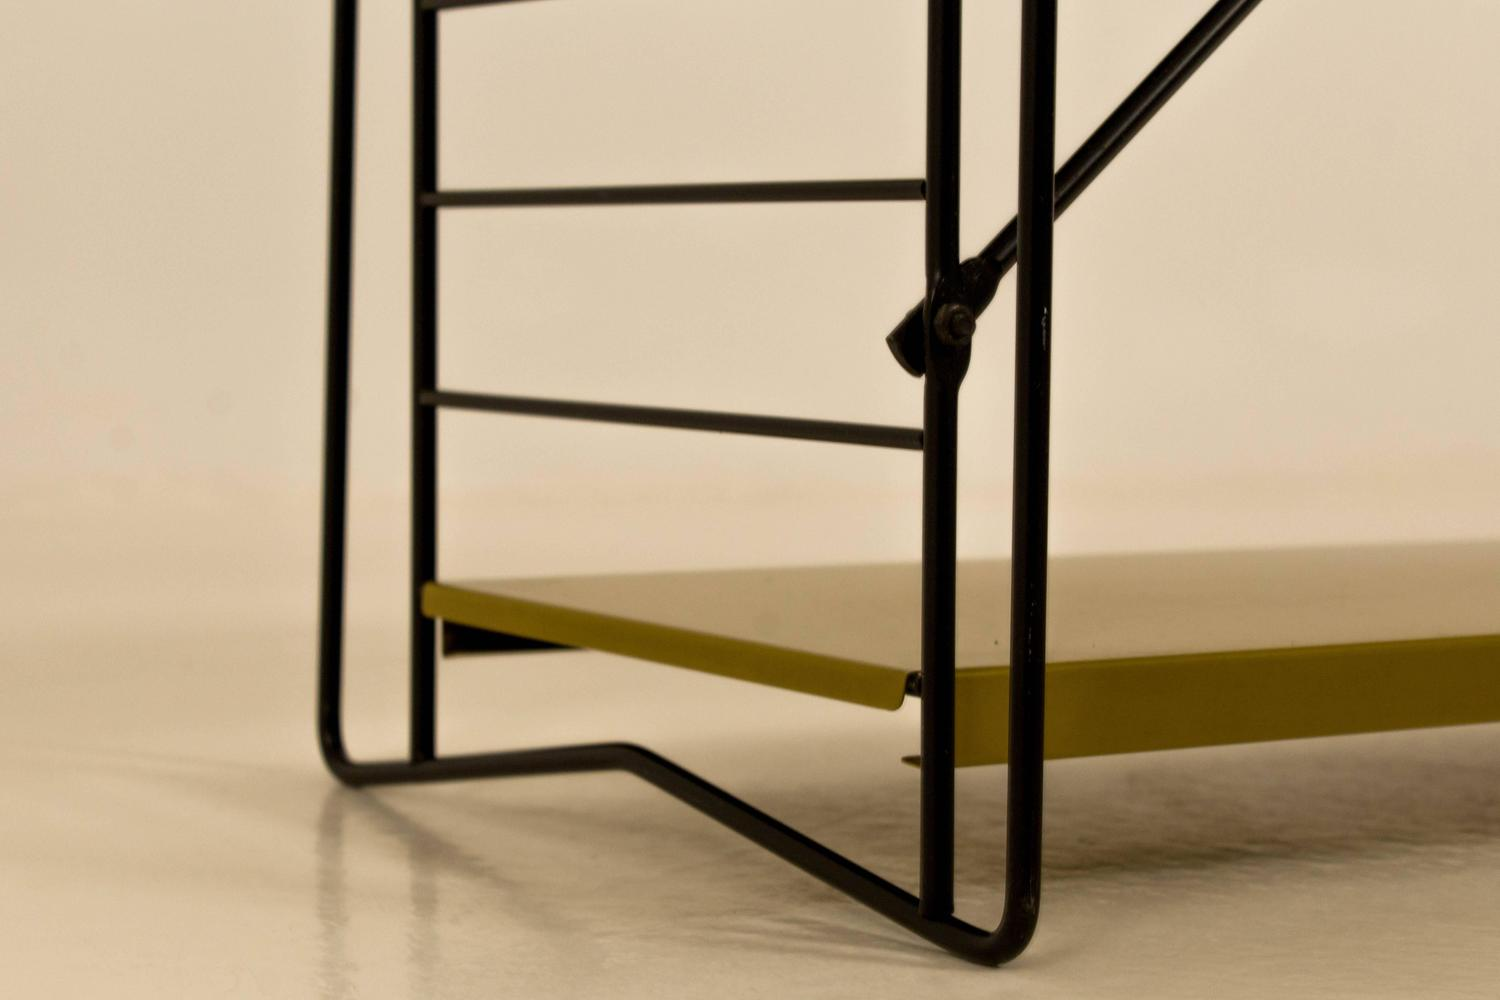 Mid-Century Modern Shelving Unit by Tomado, 1960s at 1stdibs